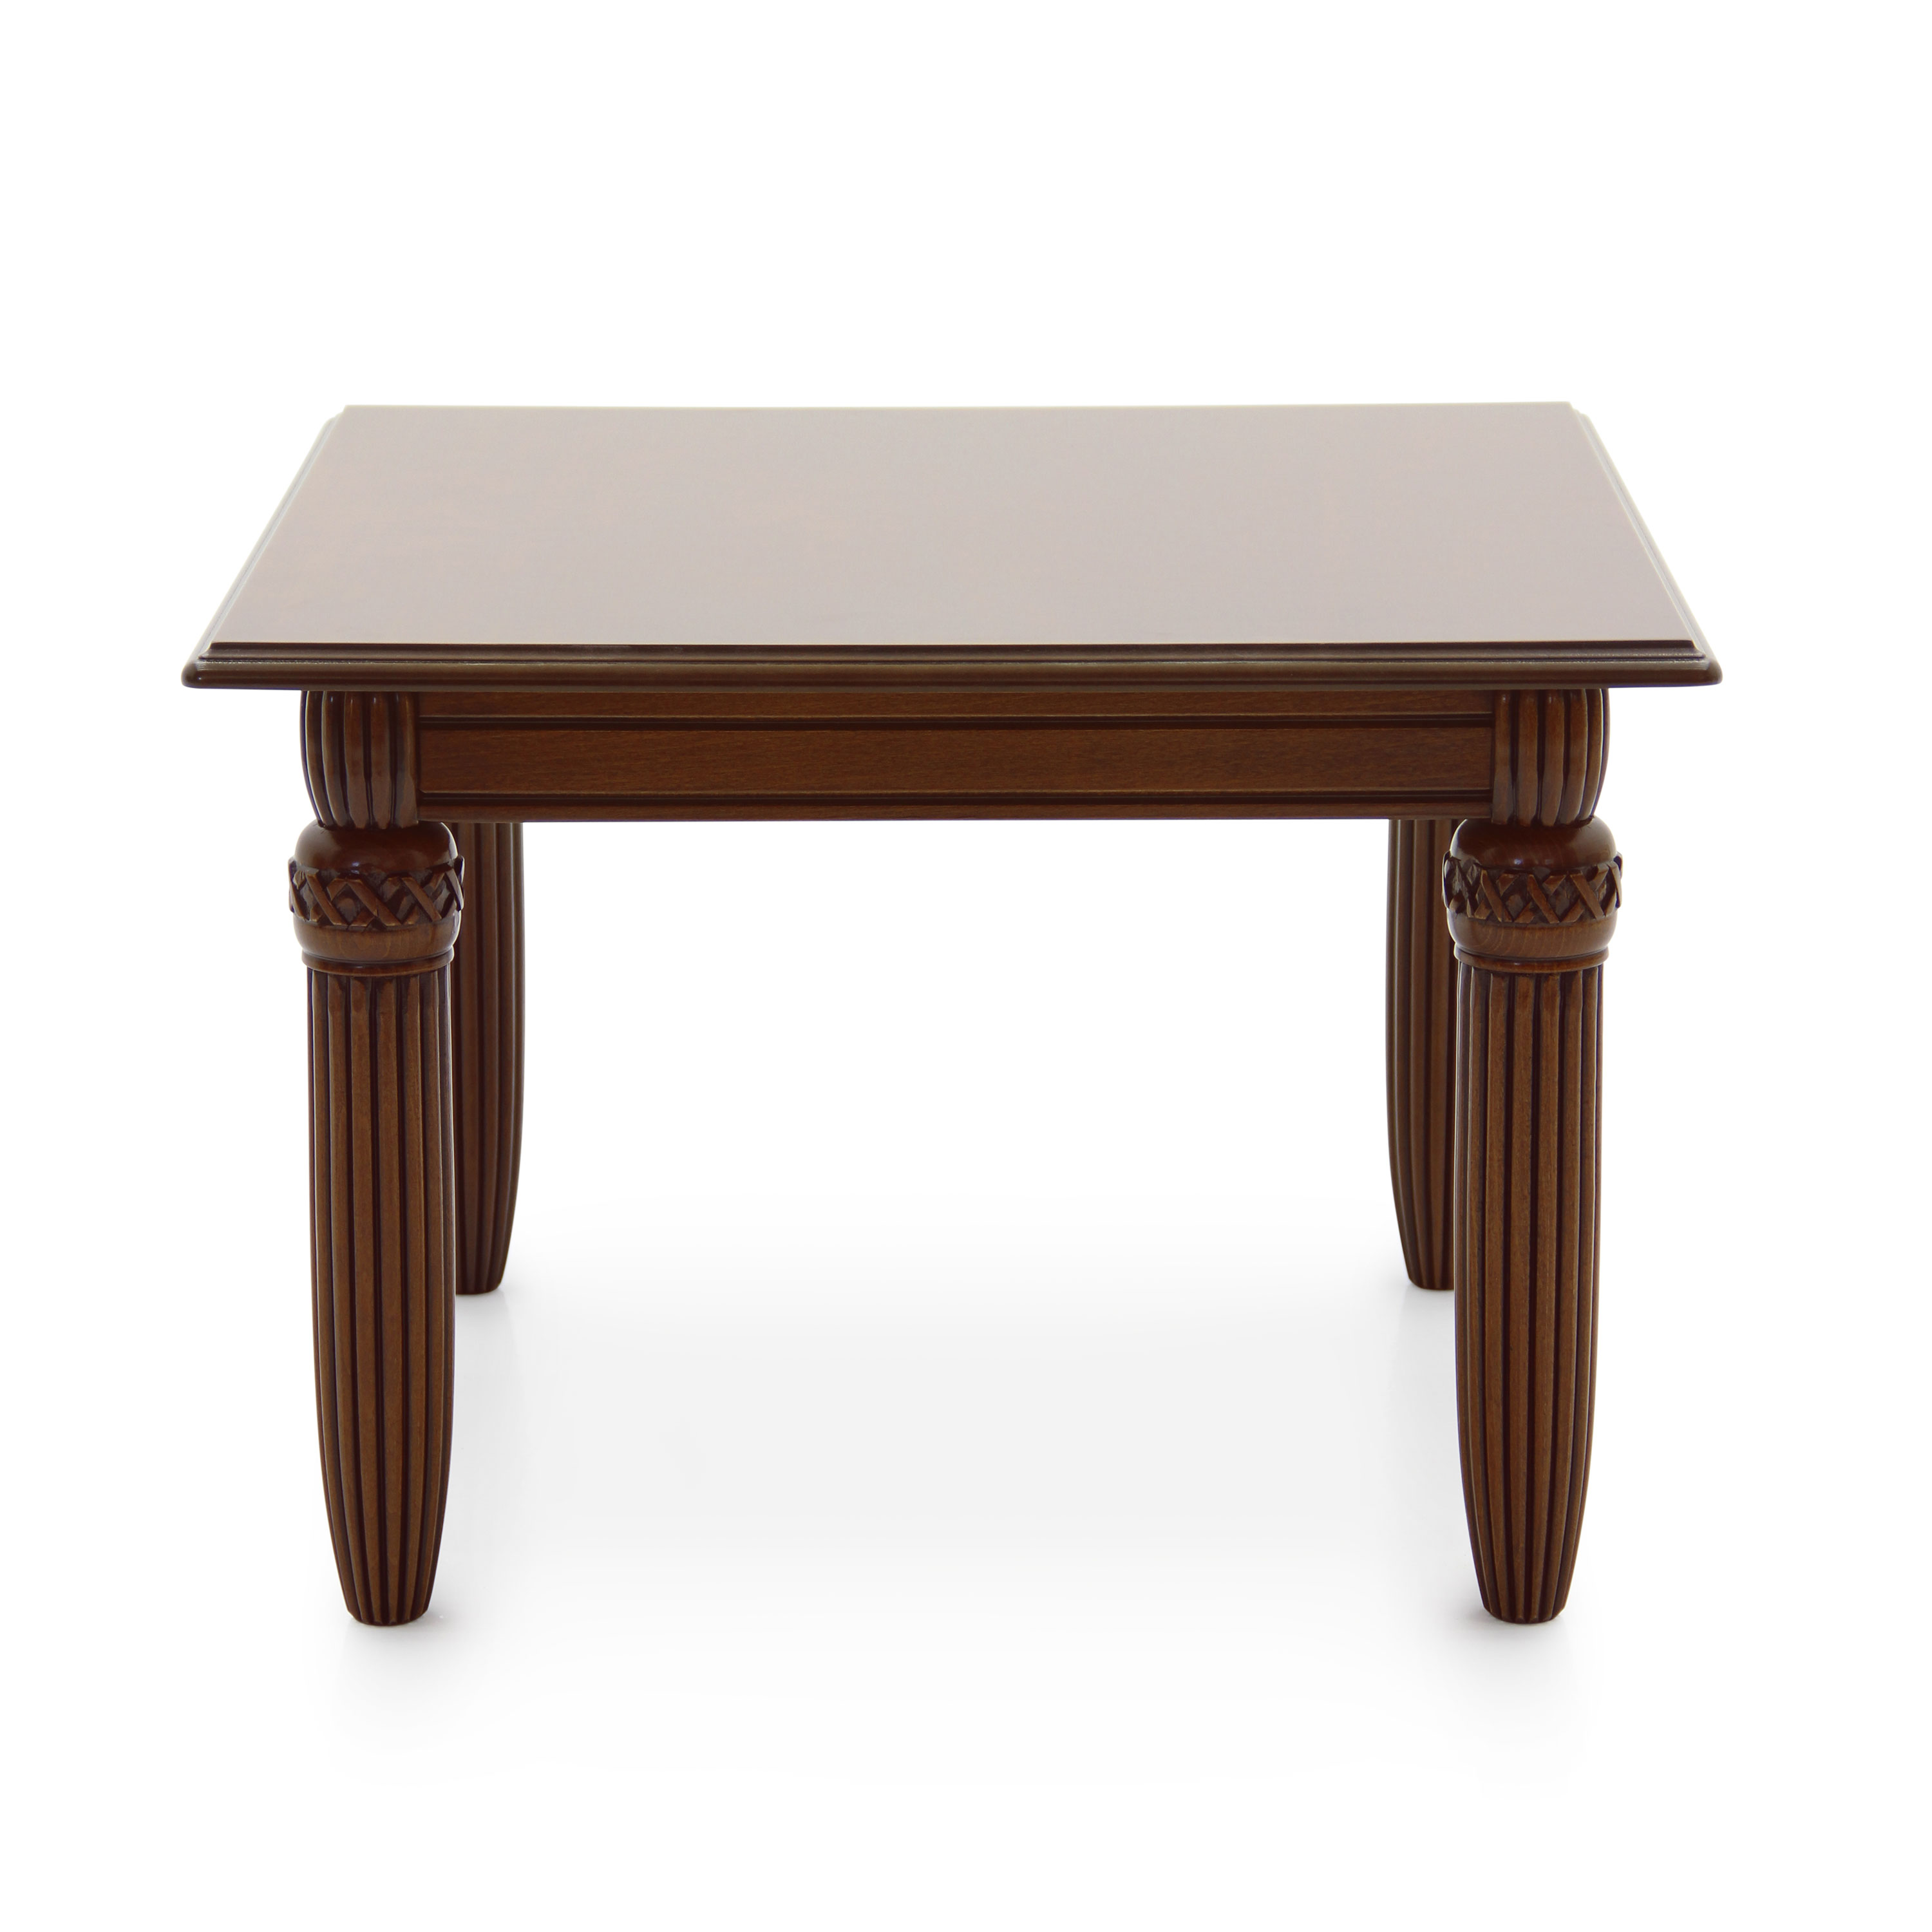 Superieur Classic Style Small Square Wooden Table